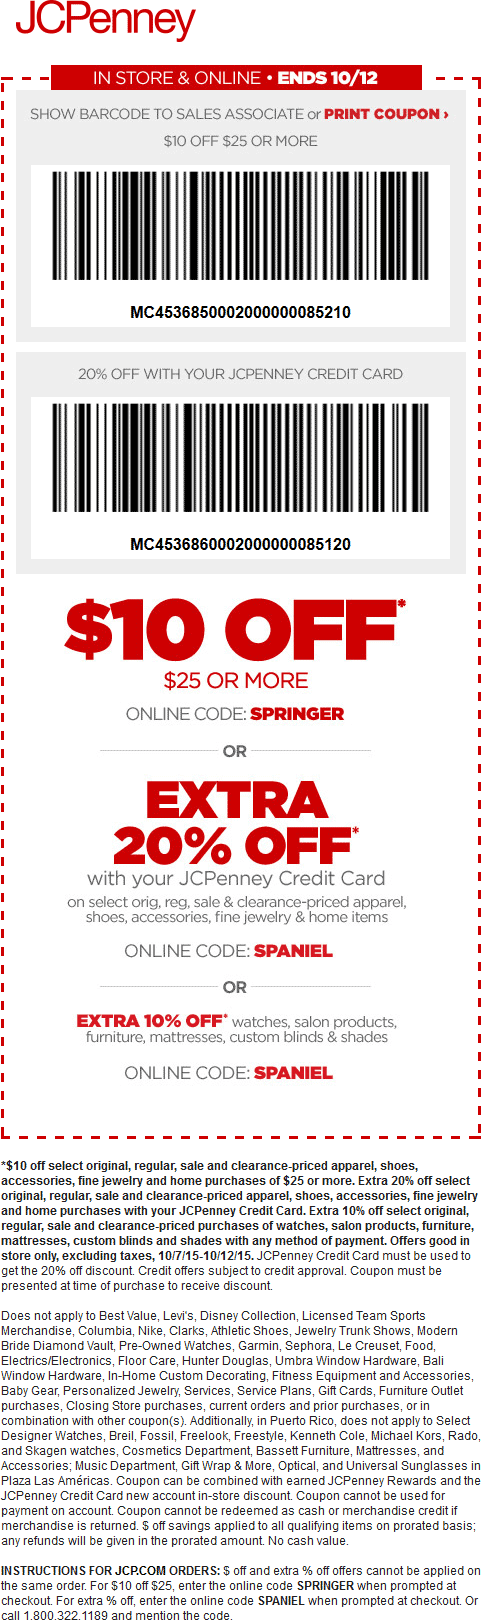 JCPenney Coupon February 2018 $10 off $25 at JCPenney, or online via promo code SPRINGER